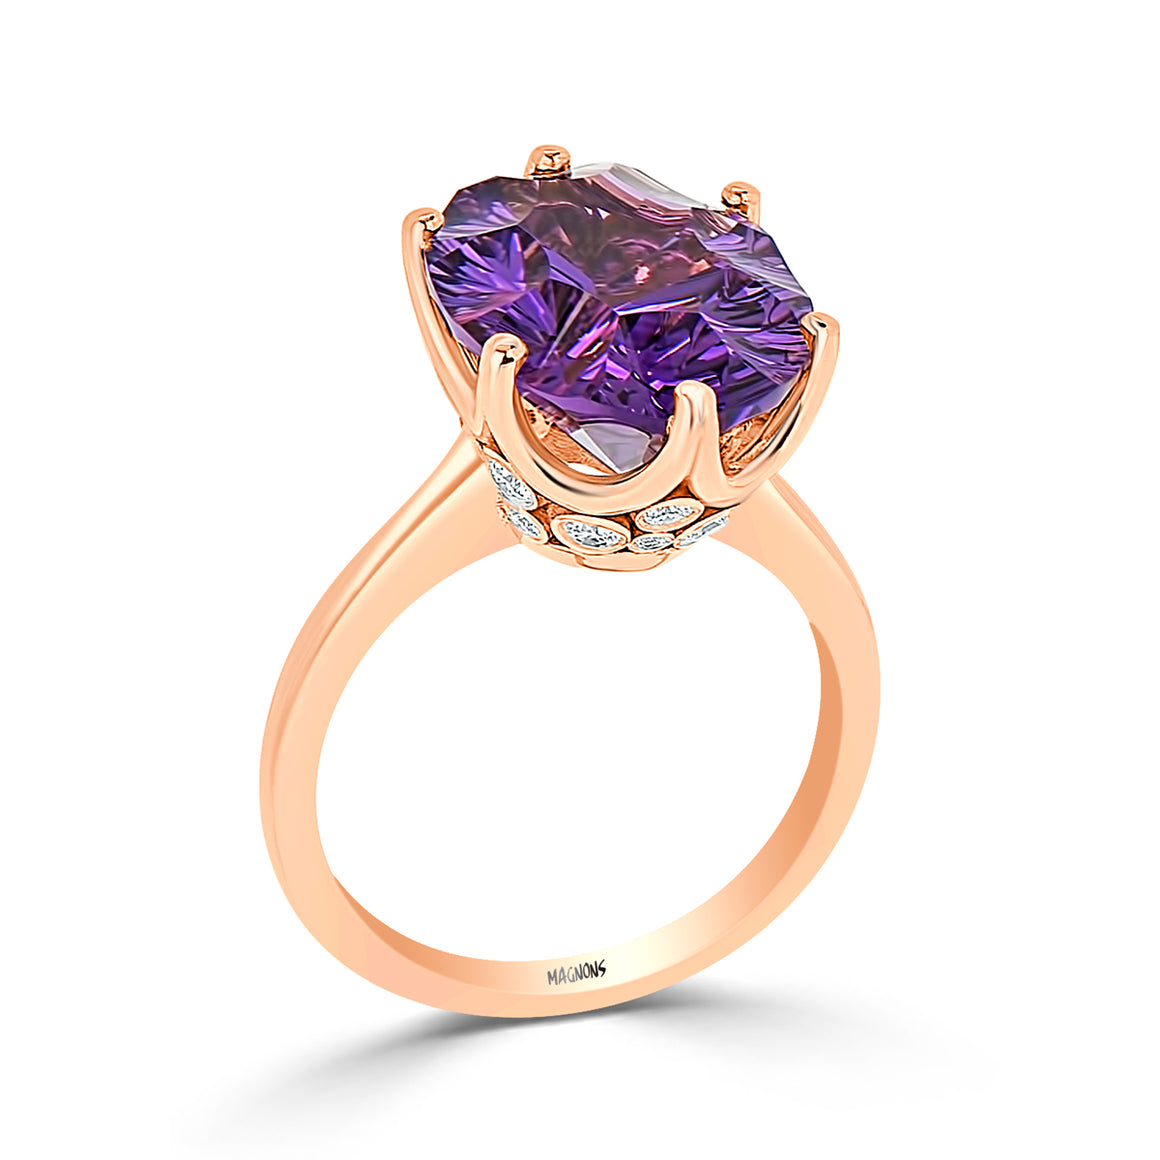 7.10CT Natural Deep Purple Amethyst & Diamond Ring 18k rose gold/Gemstone Diamond ring/Oval amethyst diamond ring